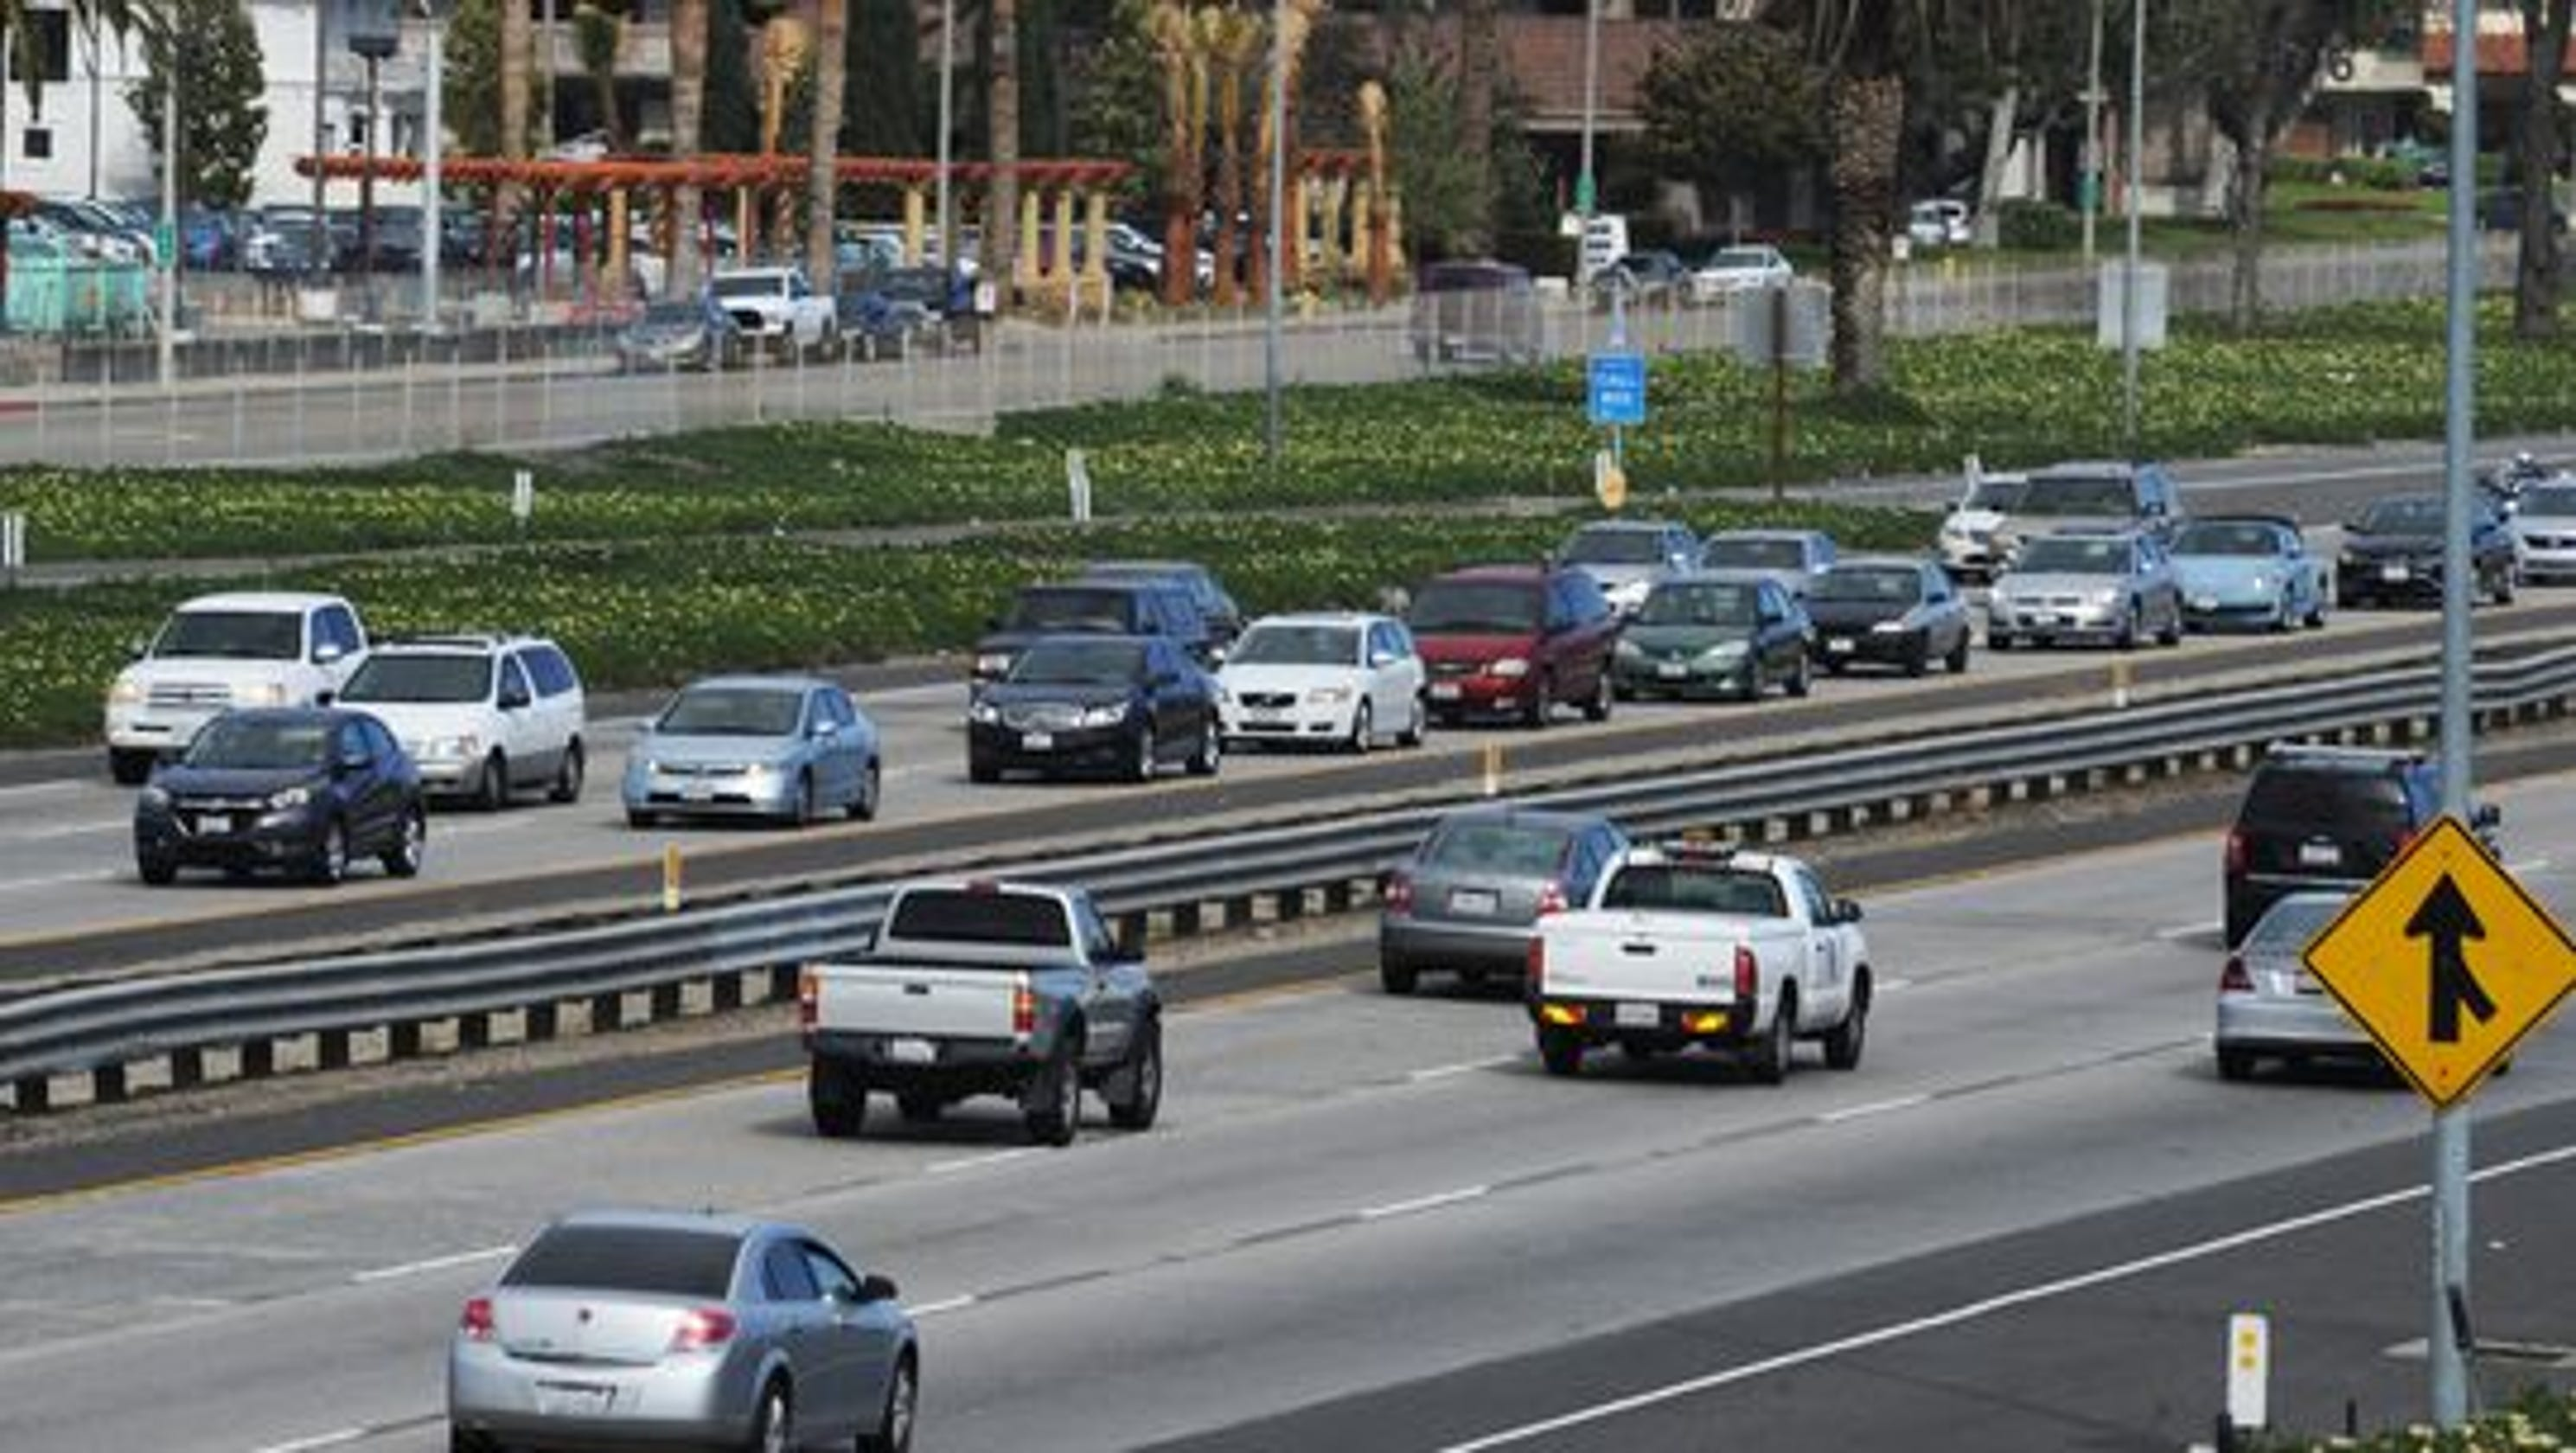 Whats An Hov Lane Caltrans State Of California >> Public Invited To Comment On Planned Highway 101 Carpool Lanes